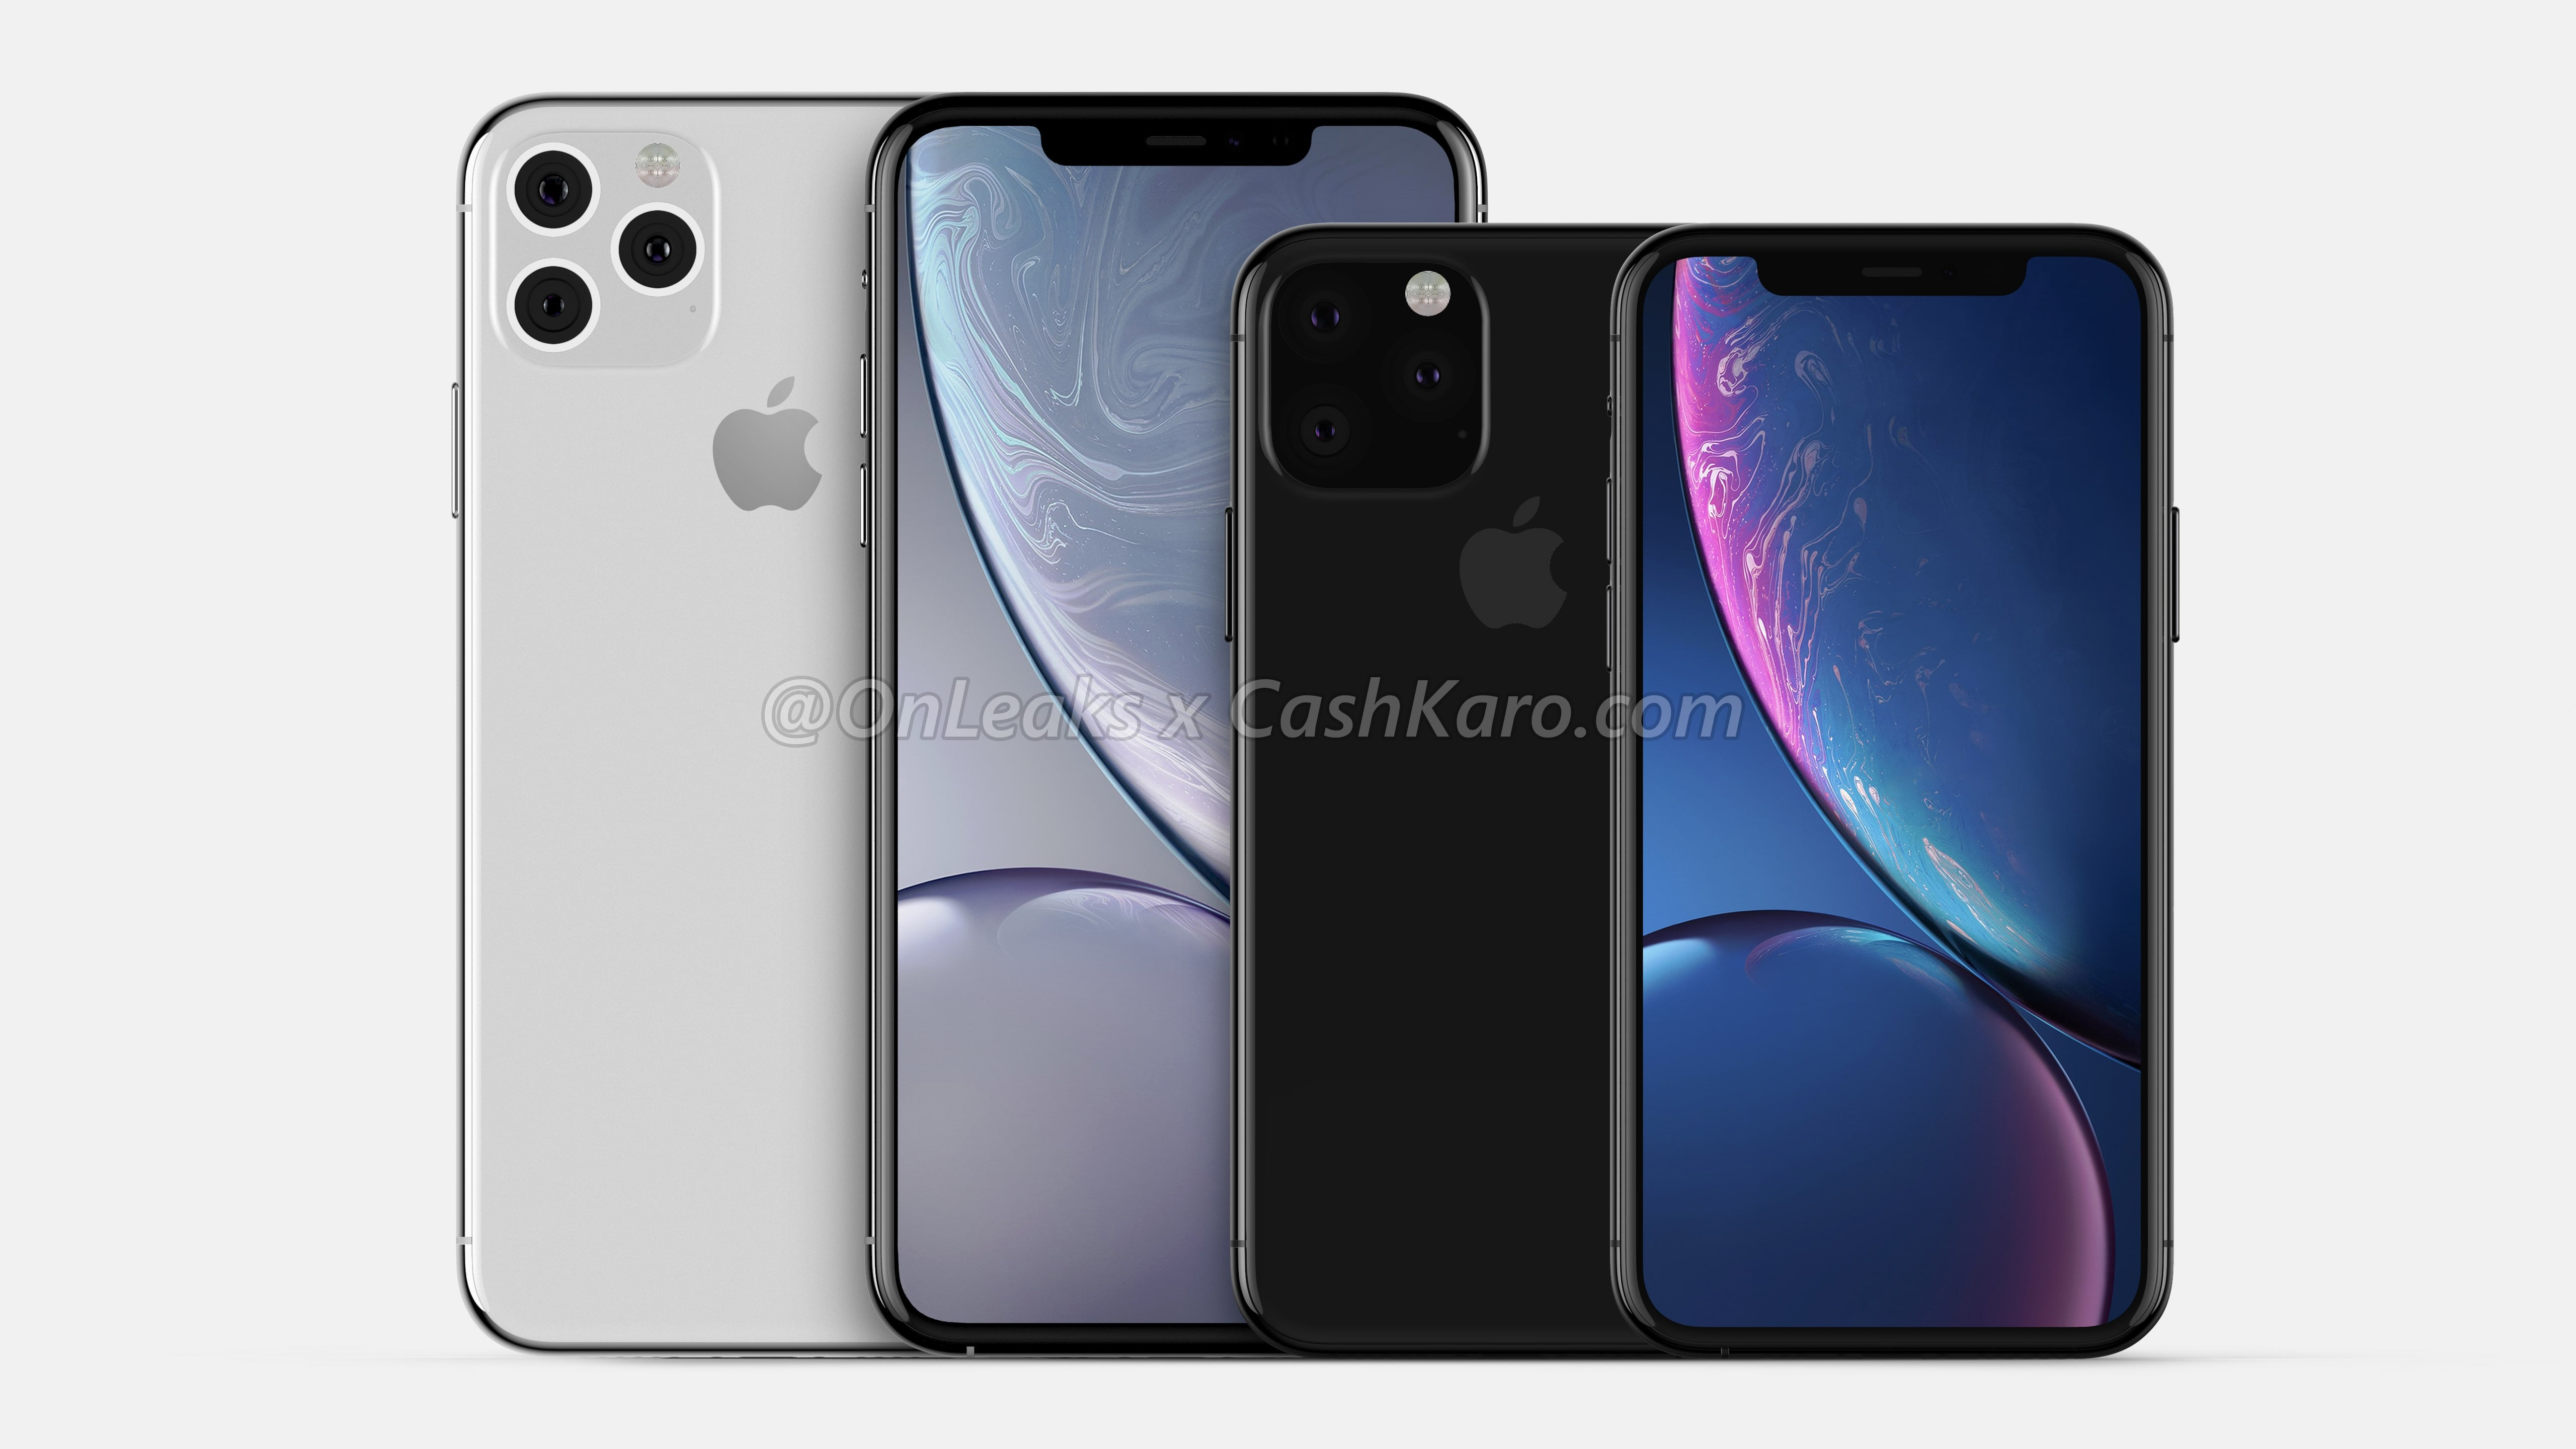 iphone xi, iphone 11